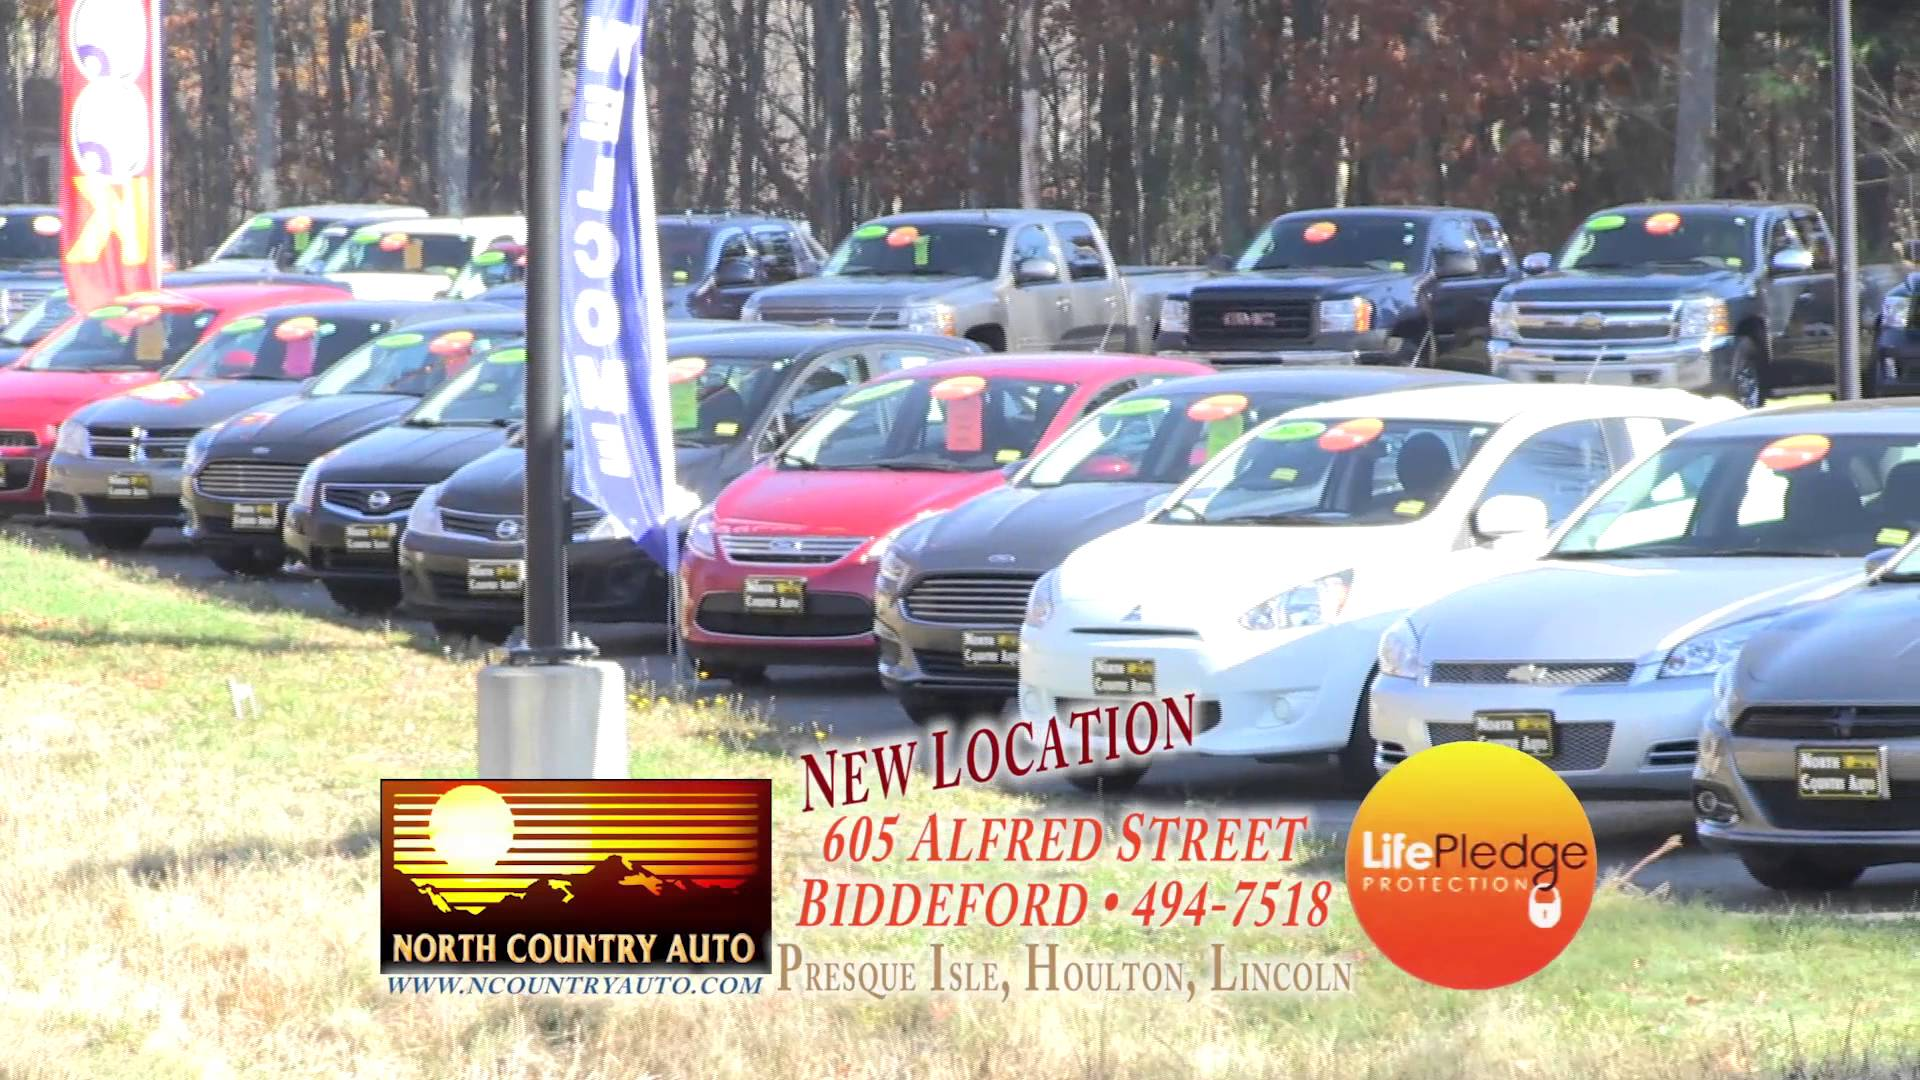 NORTH COUNTRY AUTO_LIFE PLEDGE BID 1115_RMVP263A_HD-CREDIT